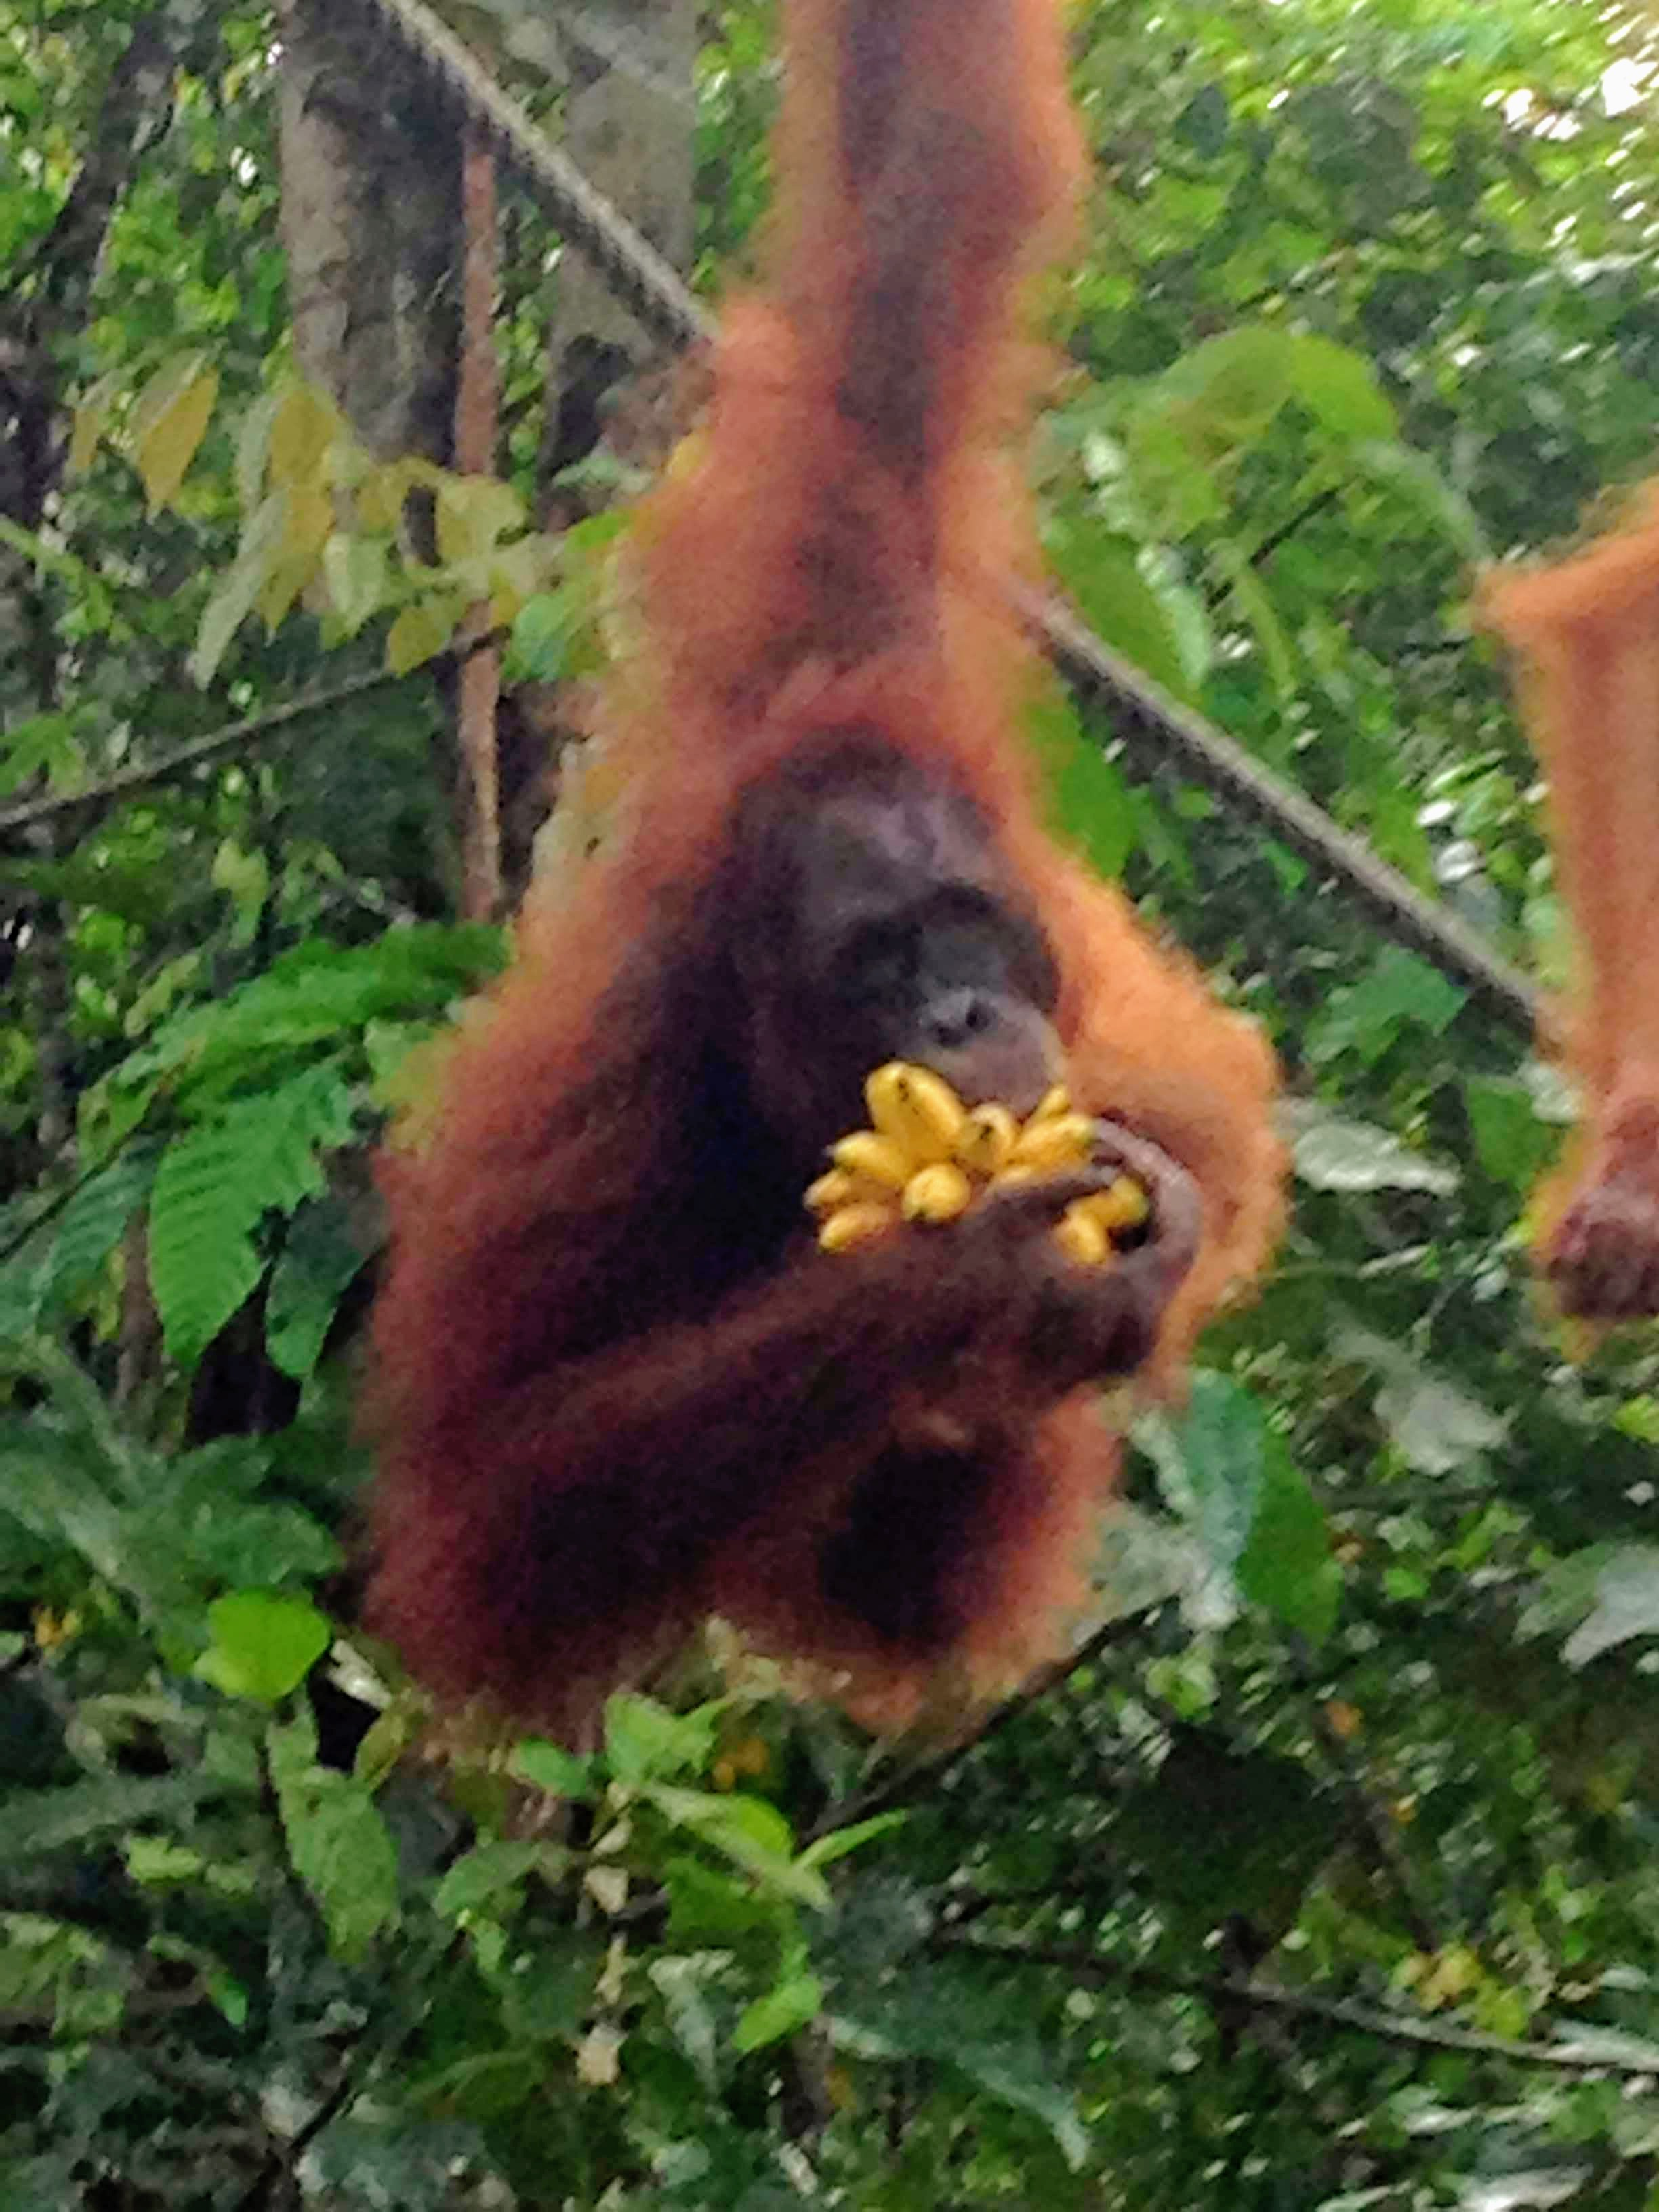 """In the Malay language, """"Orangutan"""" means """"Man of the Forest"""". Orangutans share 95% of our genetic material!"""